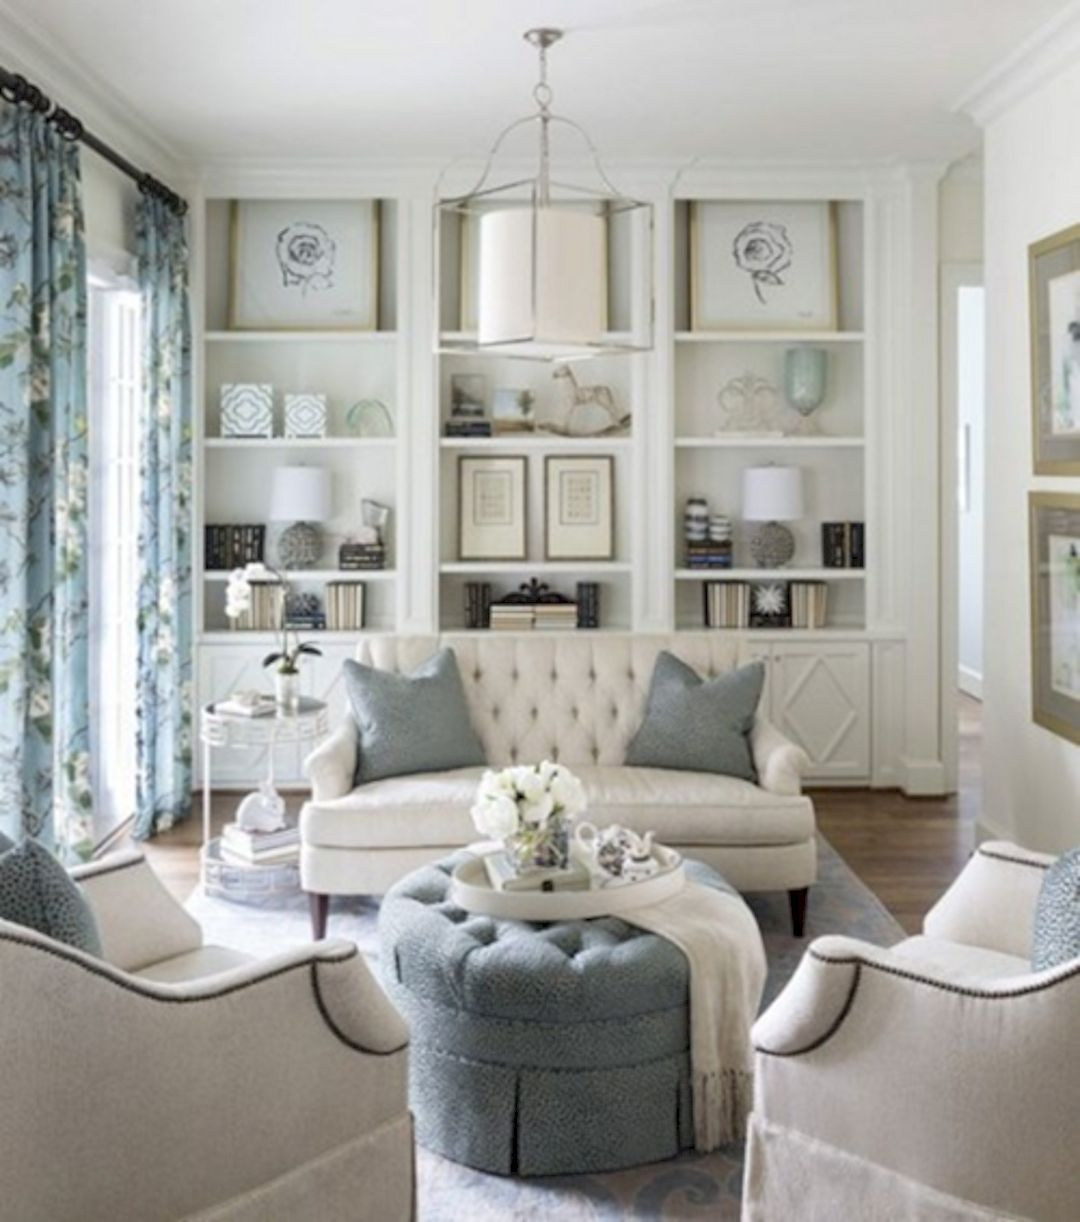 74 Super Cozy Master Sitting Room Ideas   Sitting rooms, Room ideas on home office area design, sitting for a bedroom design, home master bedroom design, home bar counter design, home front entrance design,